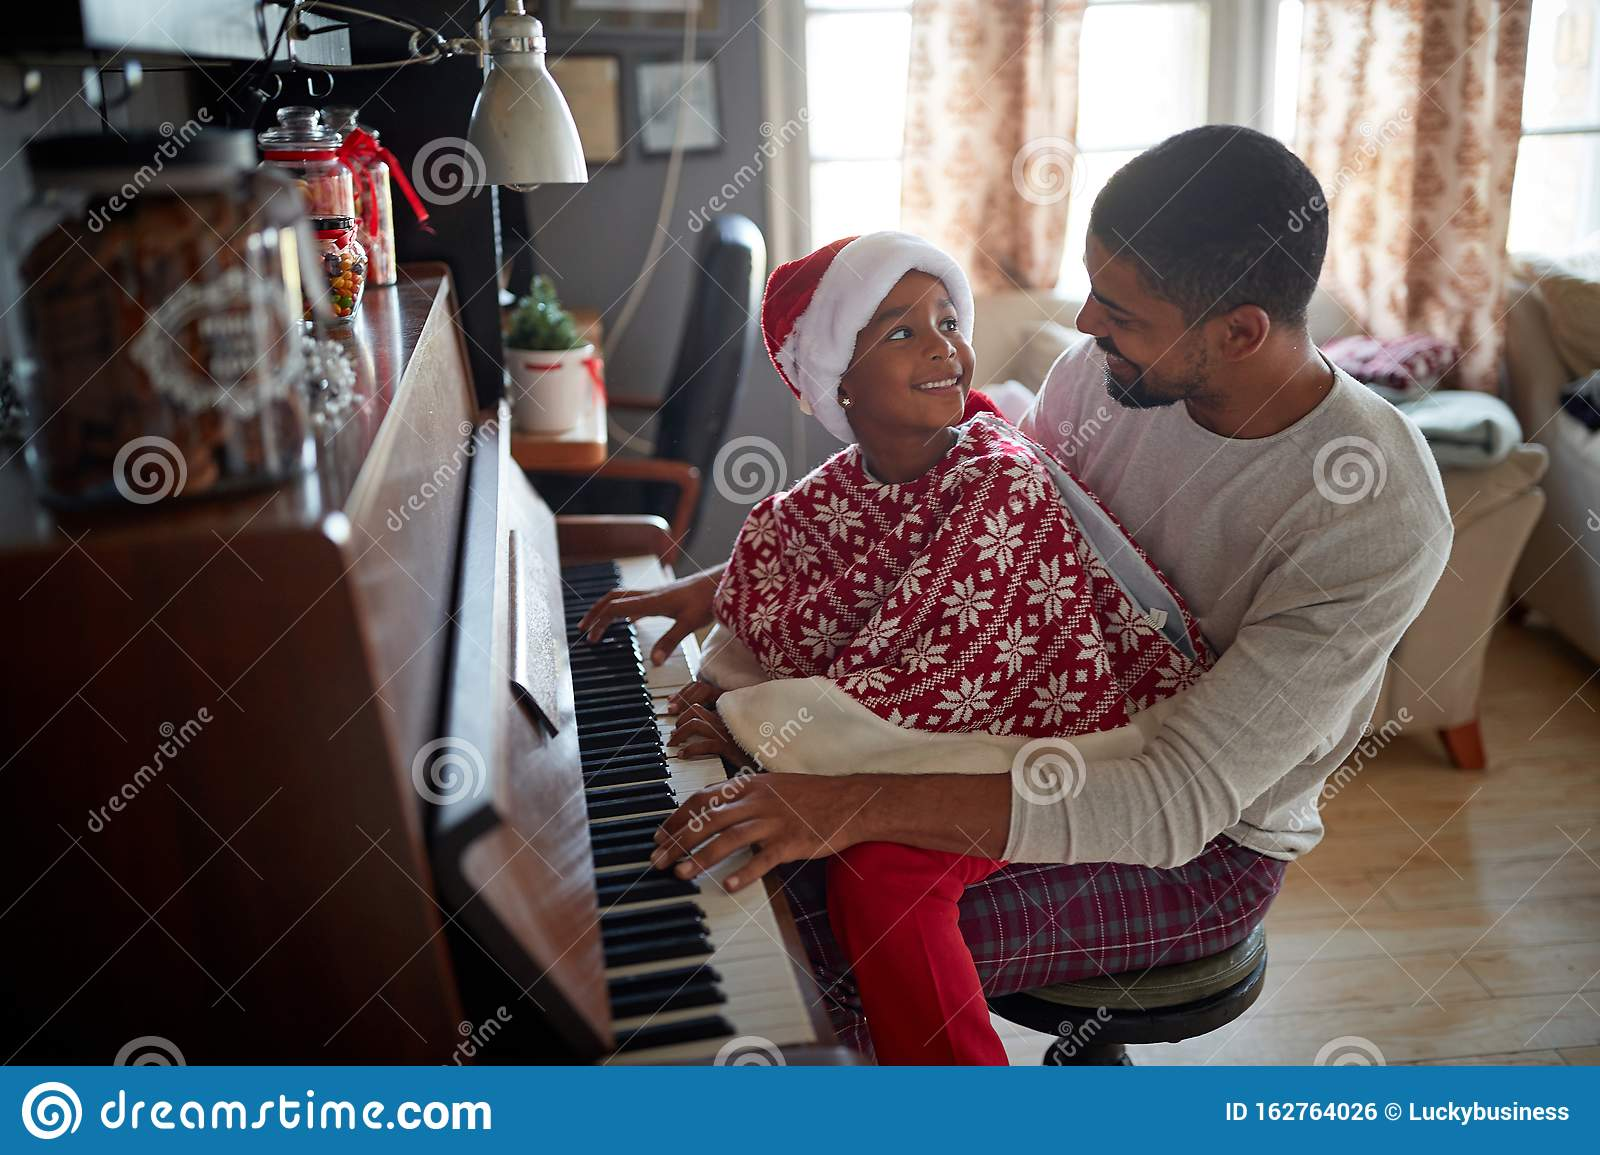 Family On Christmas Morning Play Music On Piano Stock Photo - Image of child, daughter: 162764026